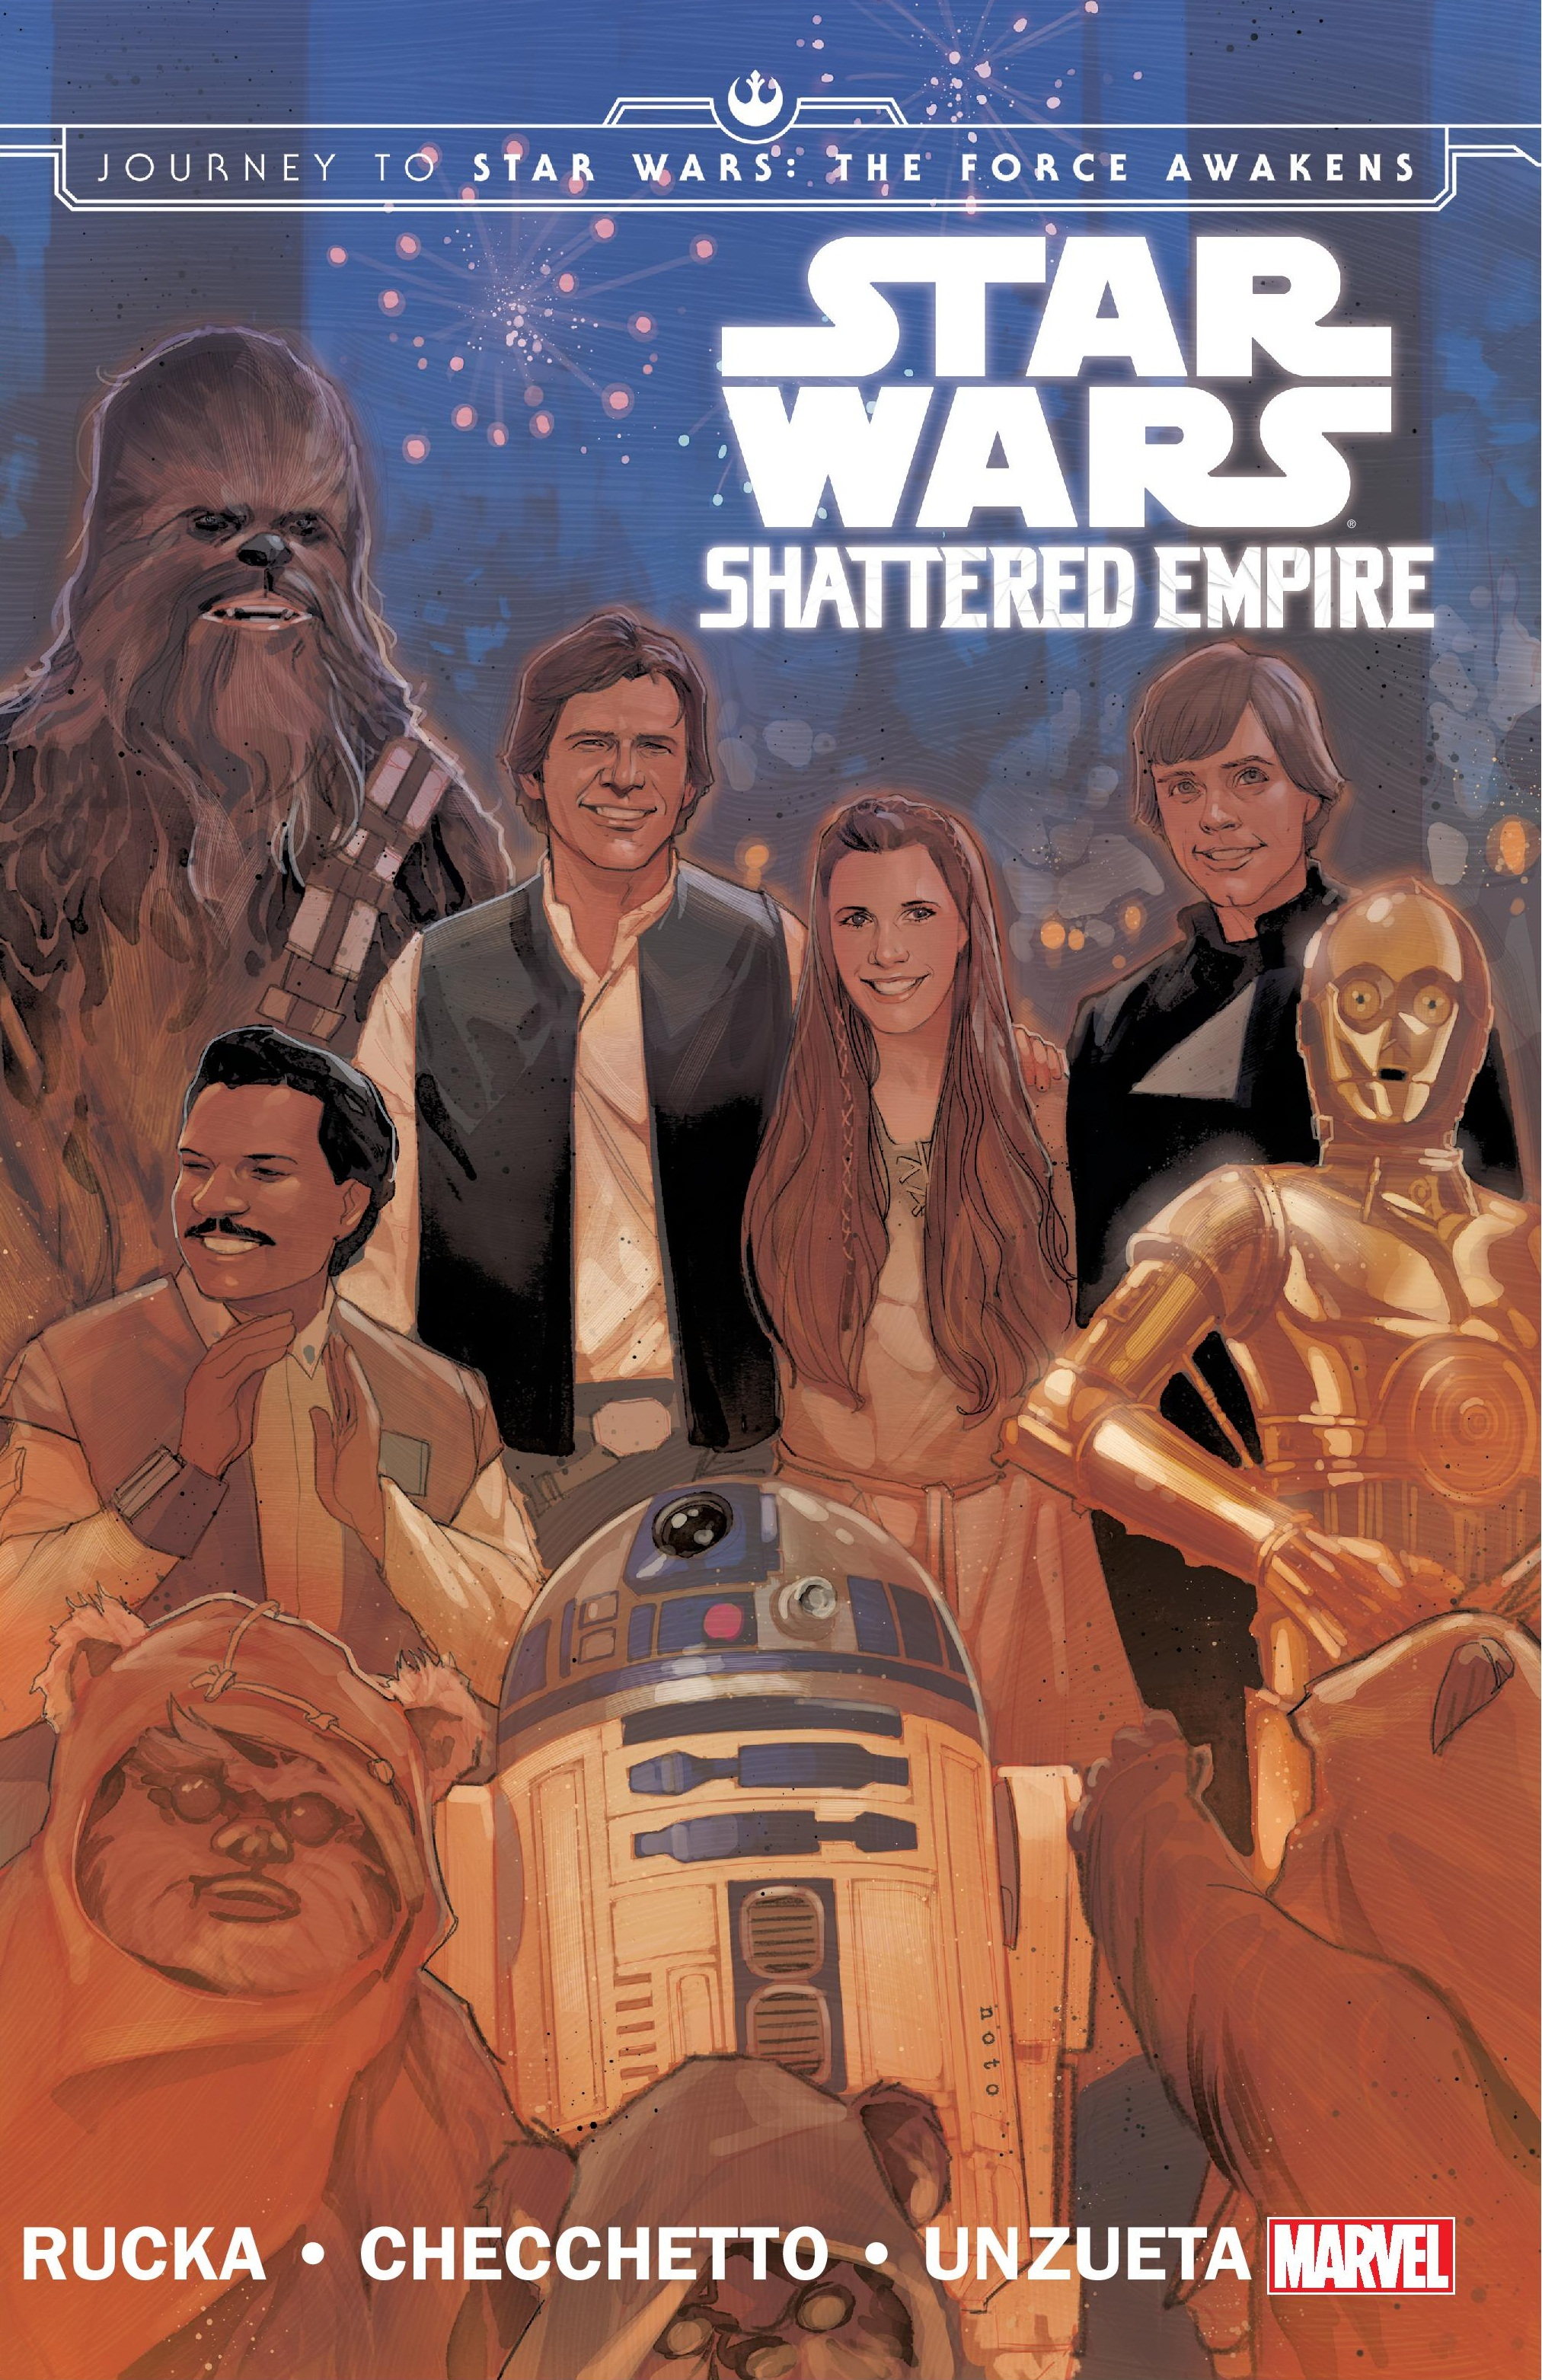 Star Wars: Journey to Star Wars: The Force Awakens - Shattered Empire (Trade Paperback)